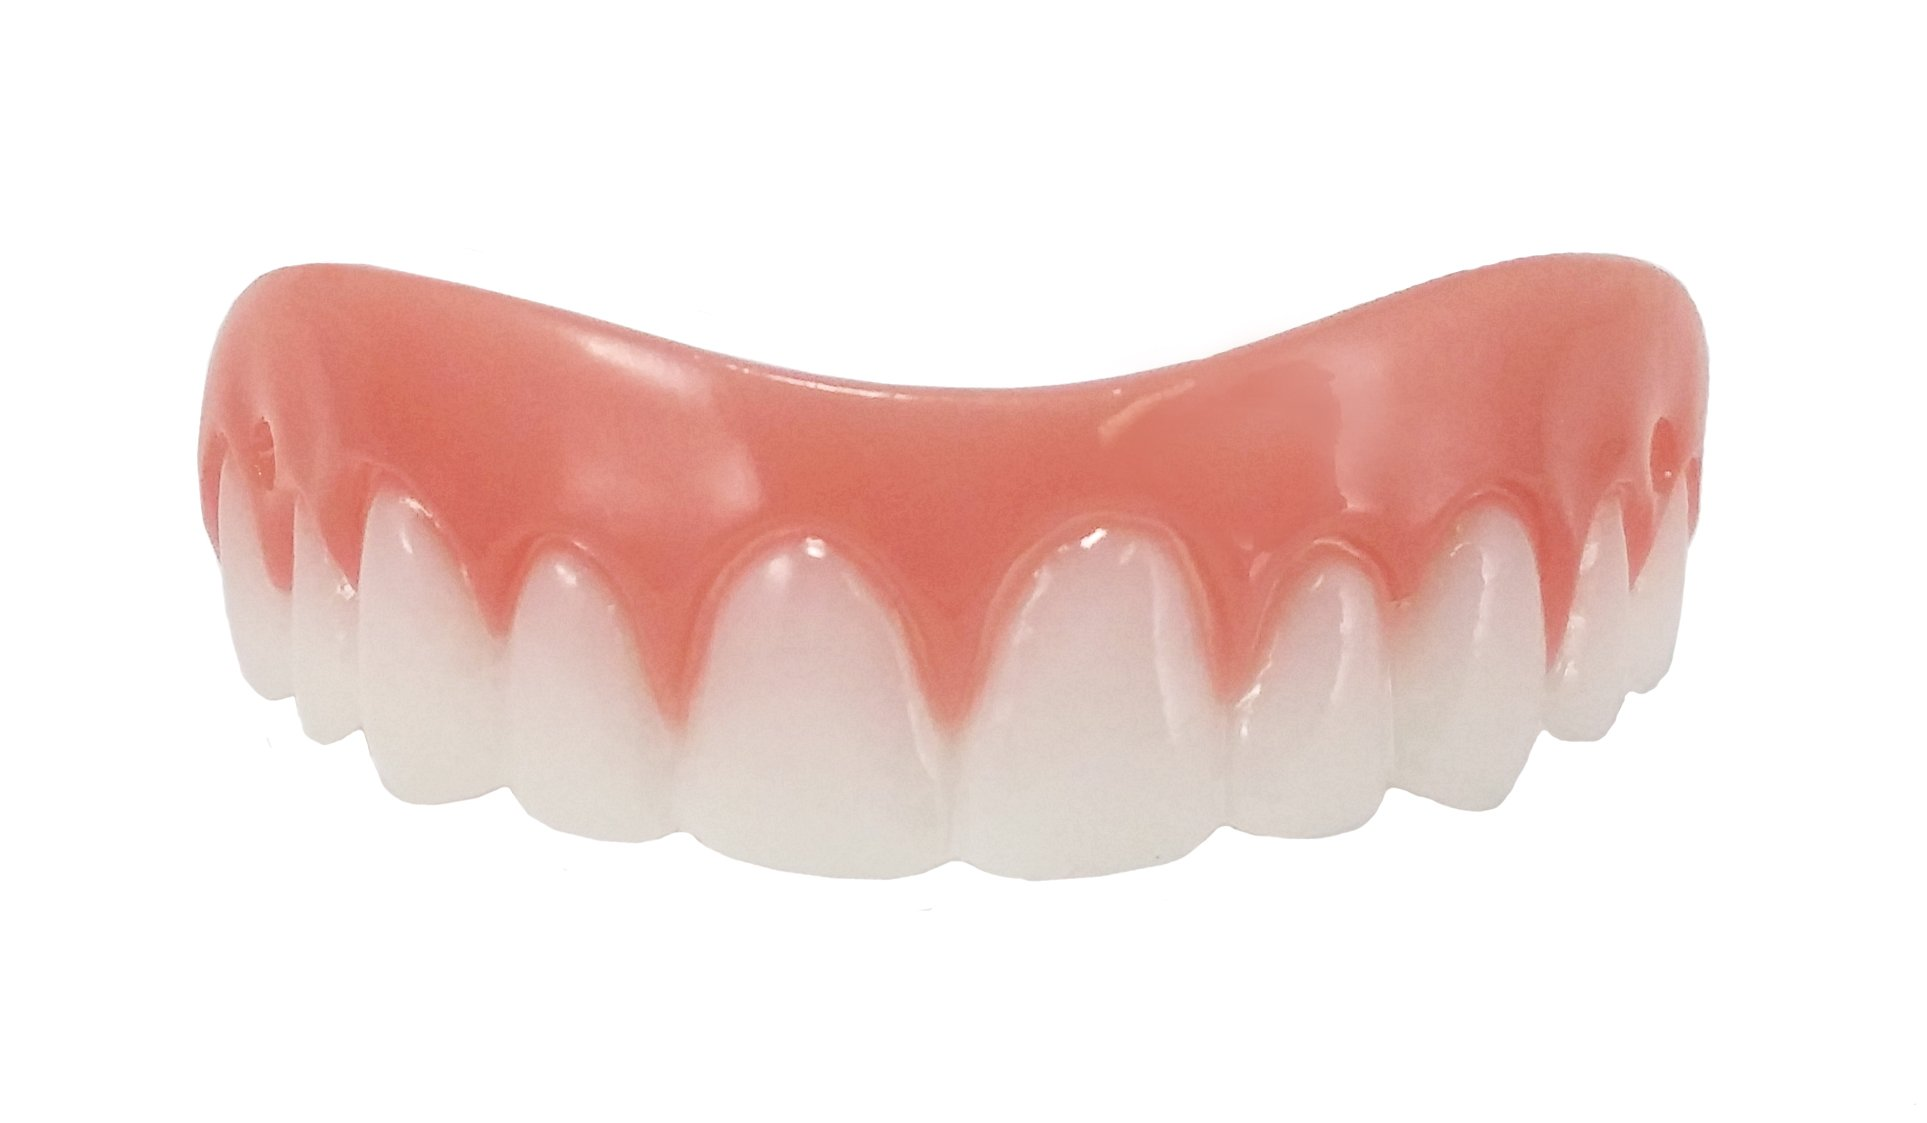 Billy-Bob Instant Smile Comfort Fit Flex Cosmetic Teeth, One Size Fits Most, Comfortable Upper Veneer